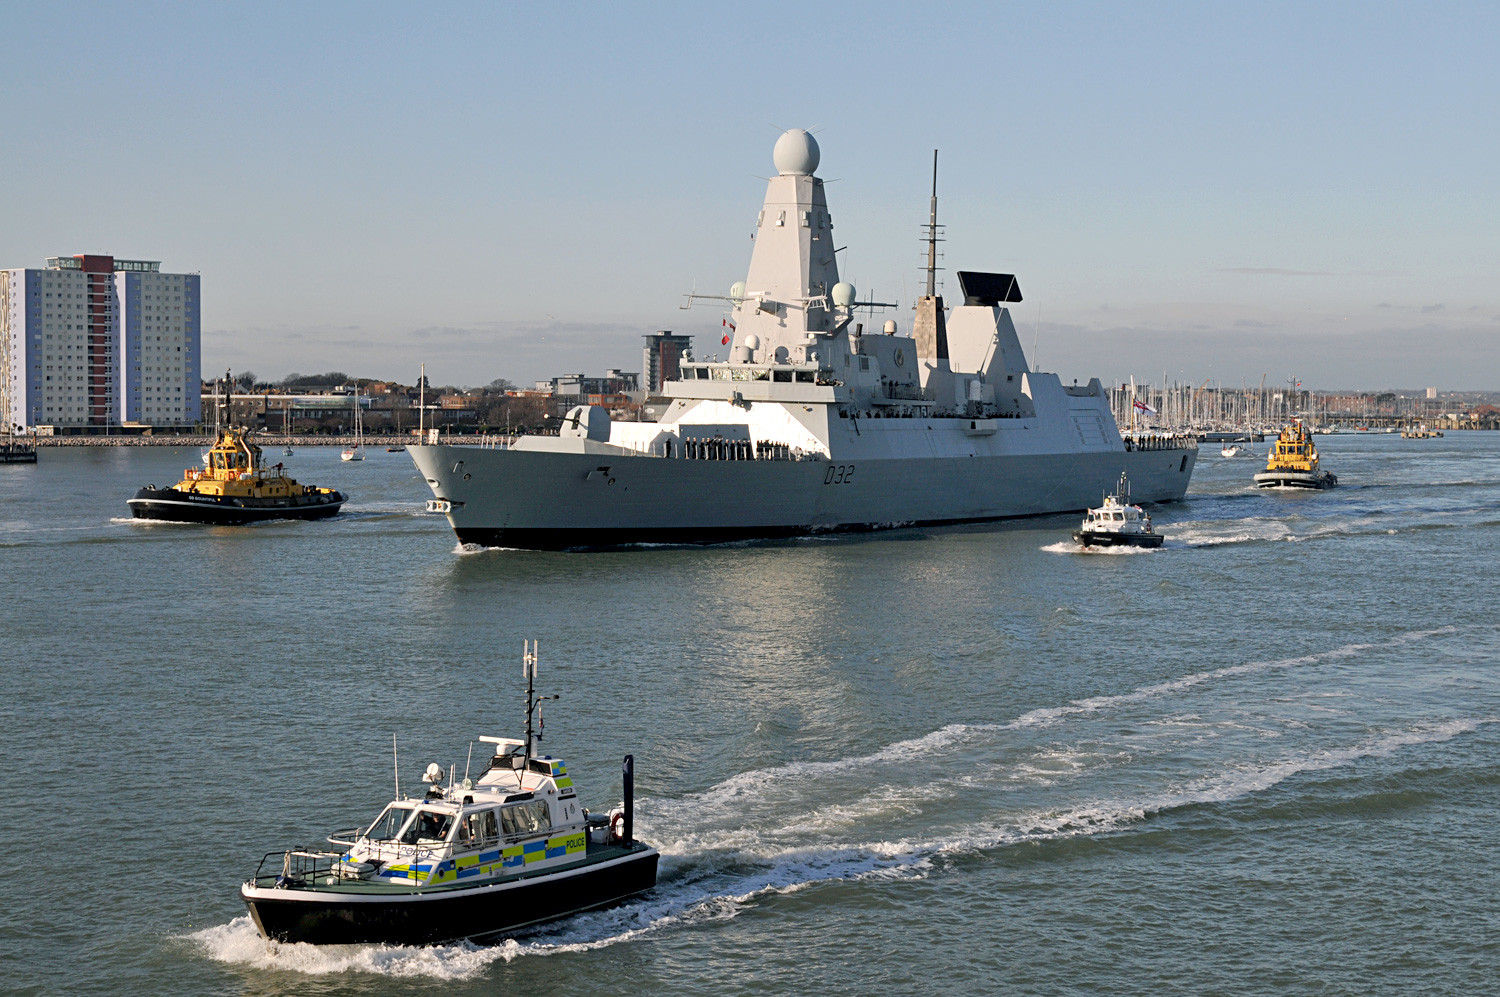 Royal Navy destroyer - HMS Daring leaving Royal Navy Base in Portsmouth